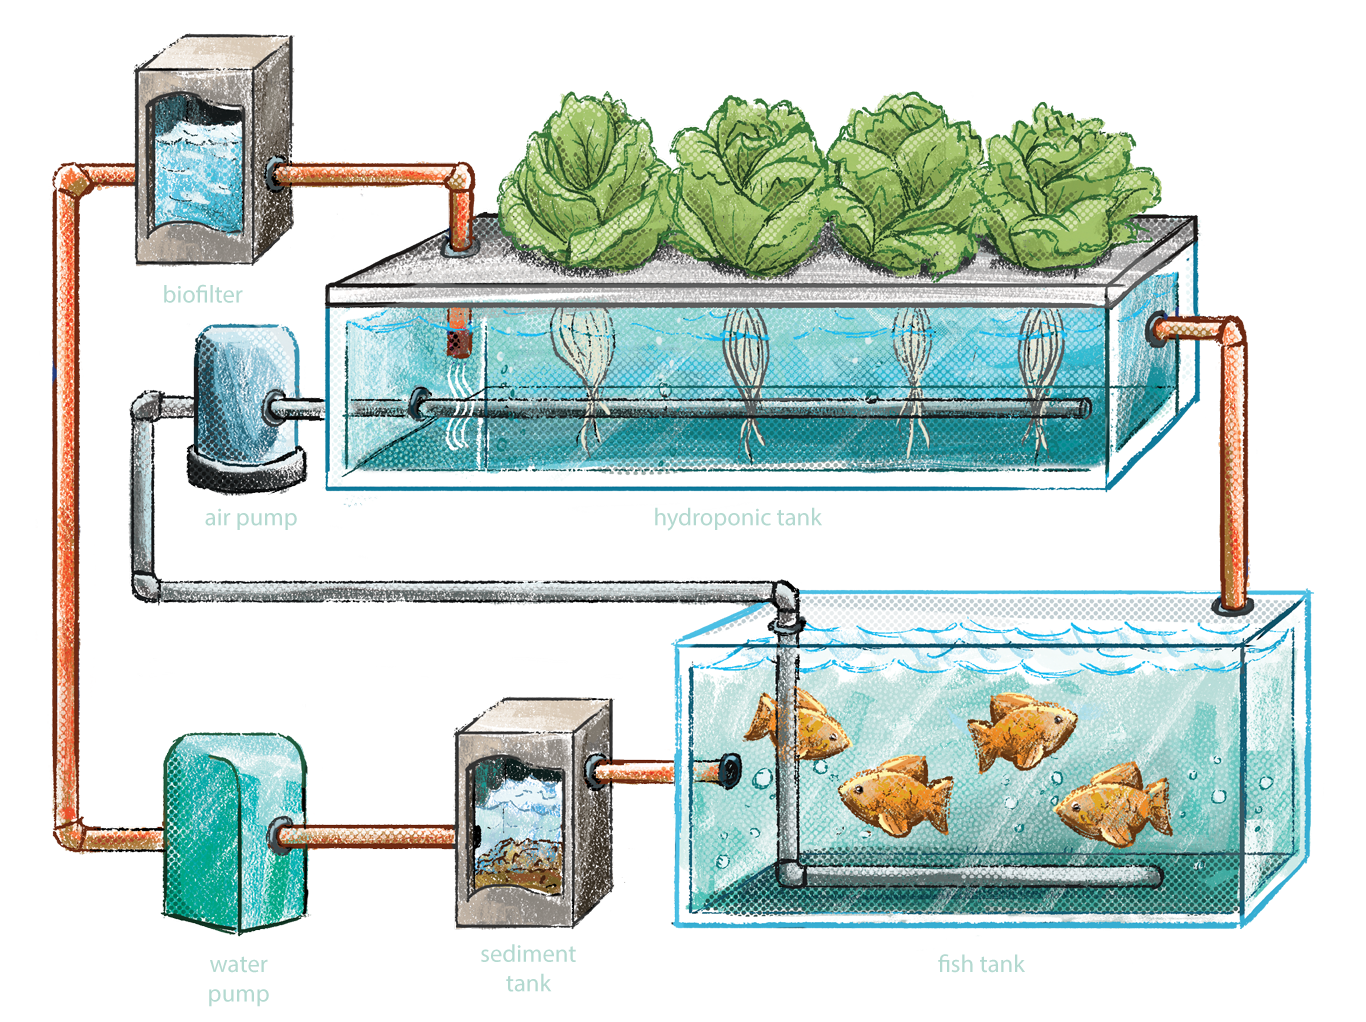 Closed aquaponics system